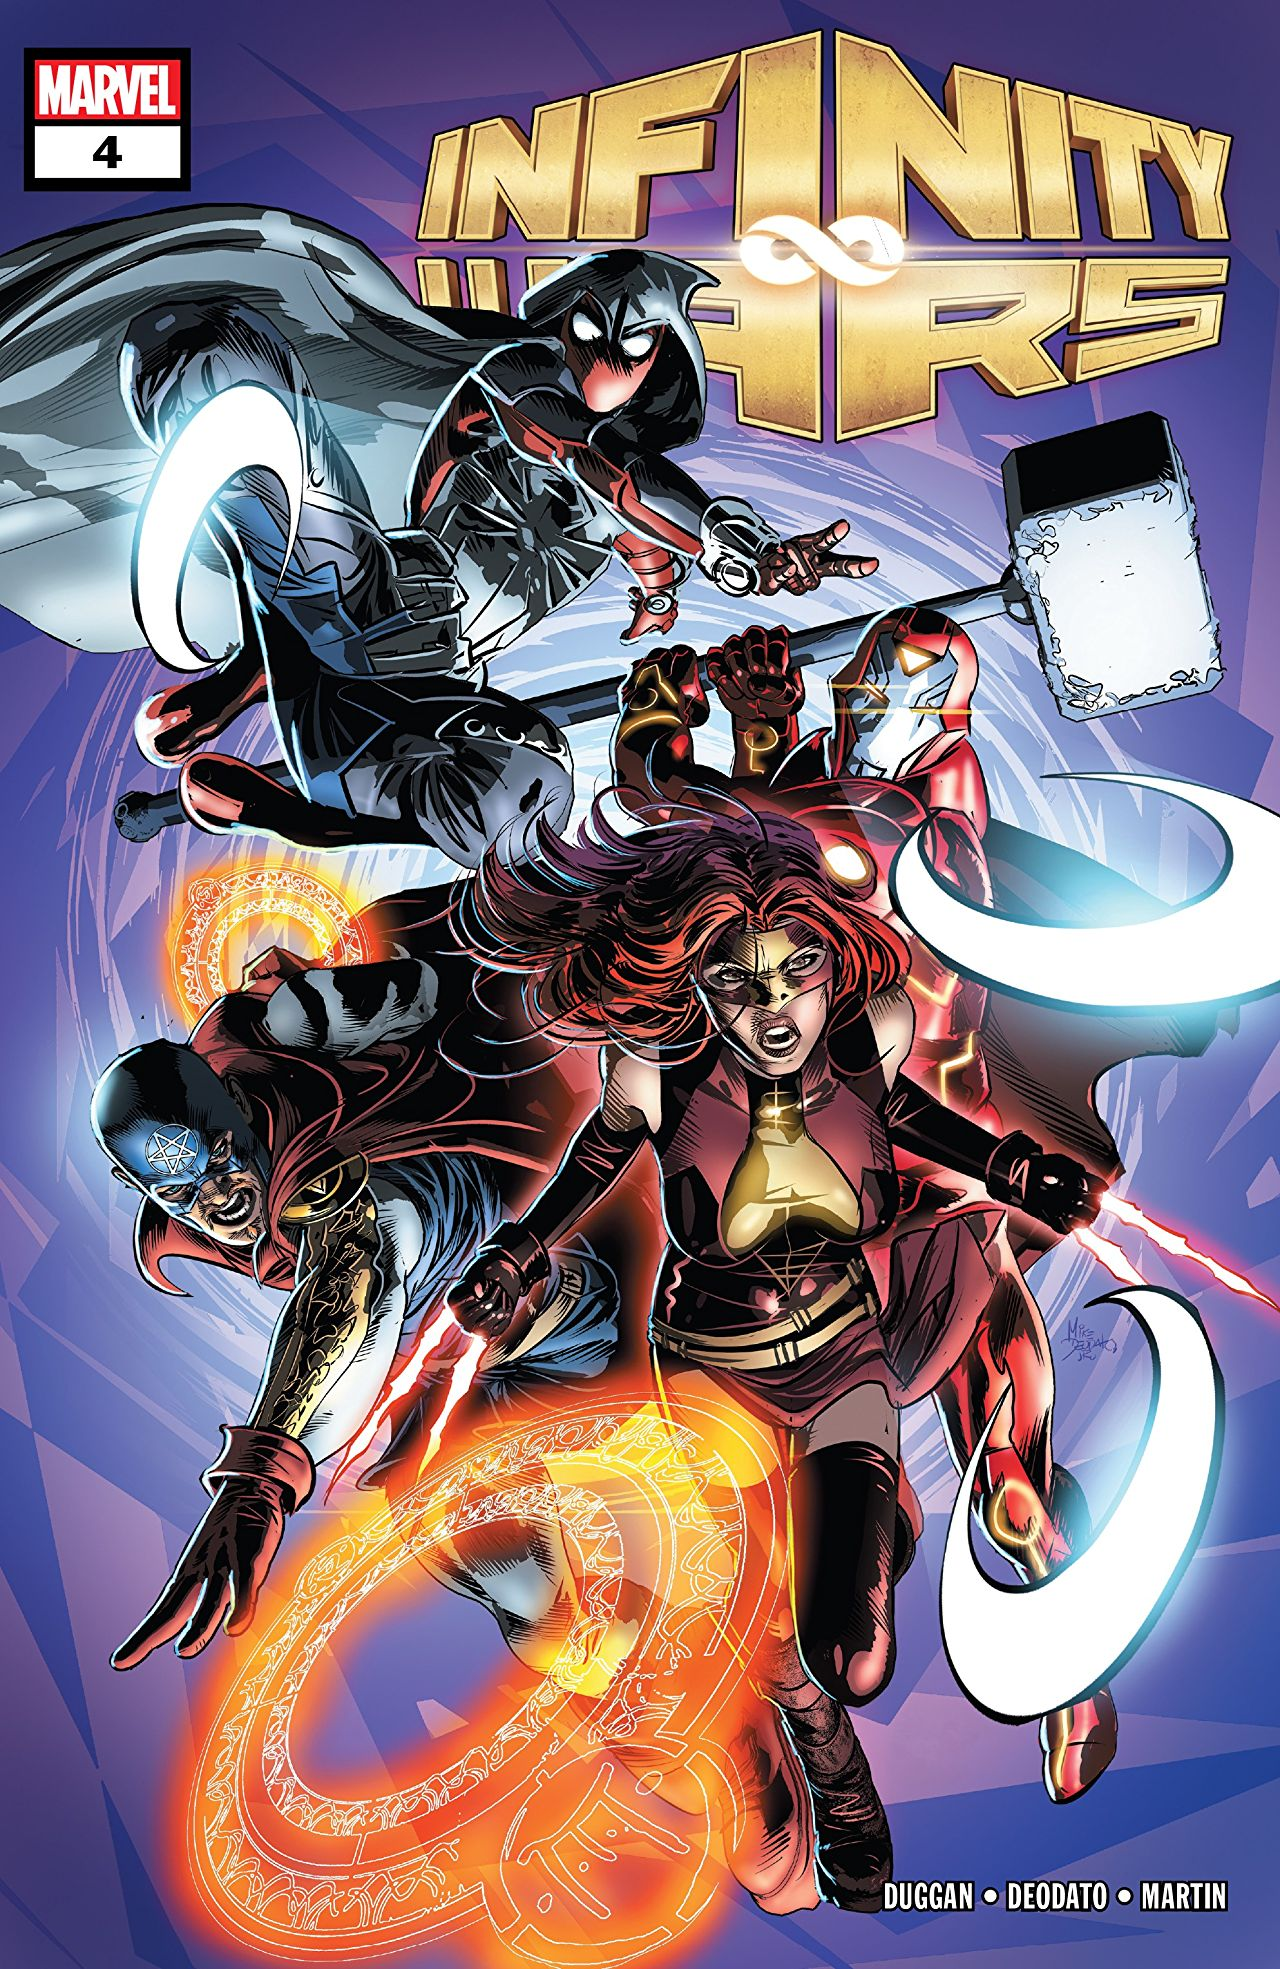 Infinity Wars #4 review: Splitting up is hard to do